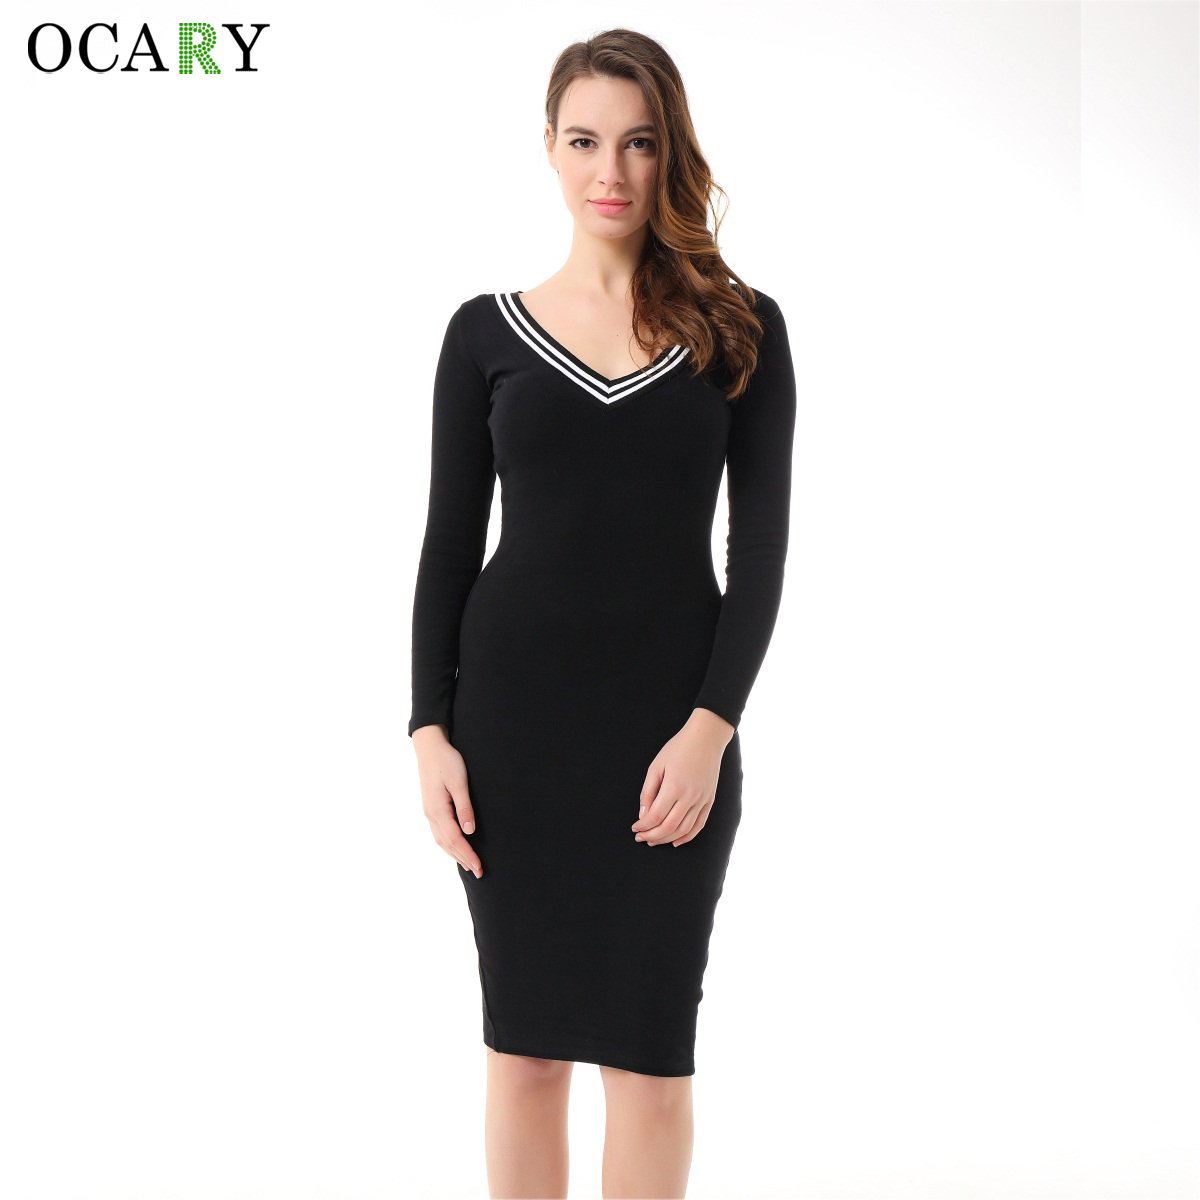 Sweater Dress Shirt Promotion-Shop for Promotional Sweater Dress ...